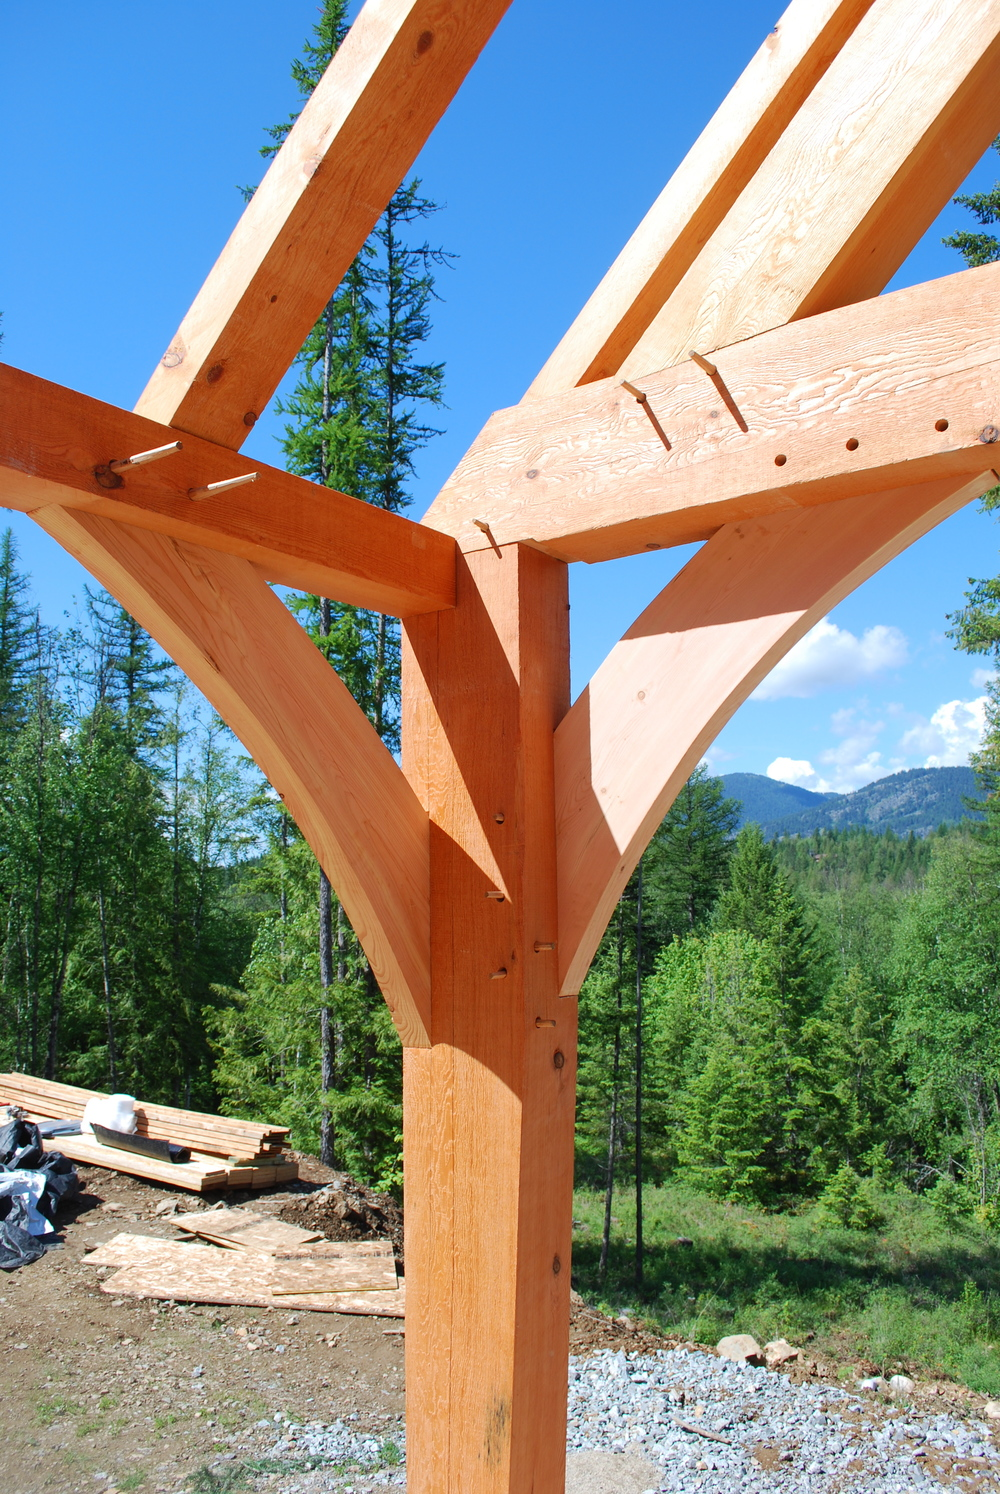 Douglas Fir braces in use.